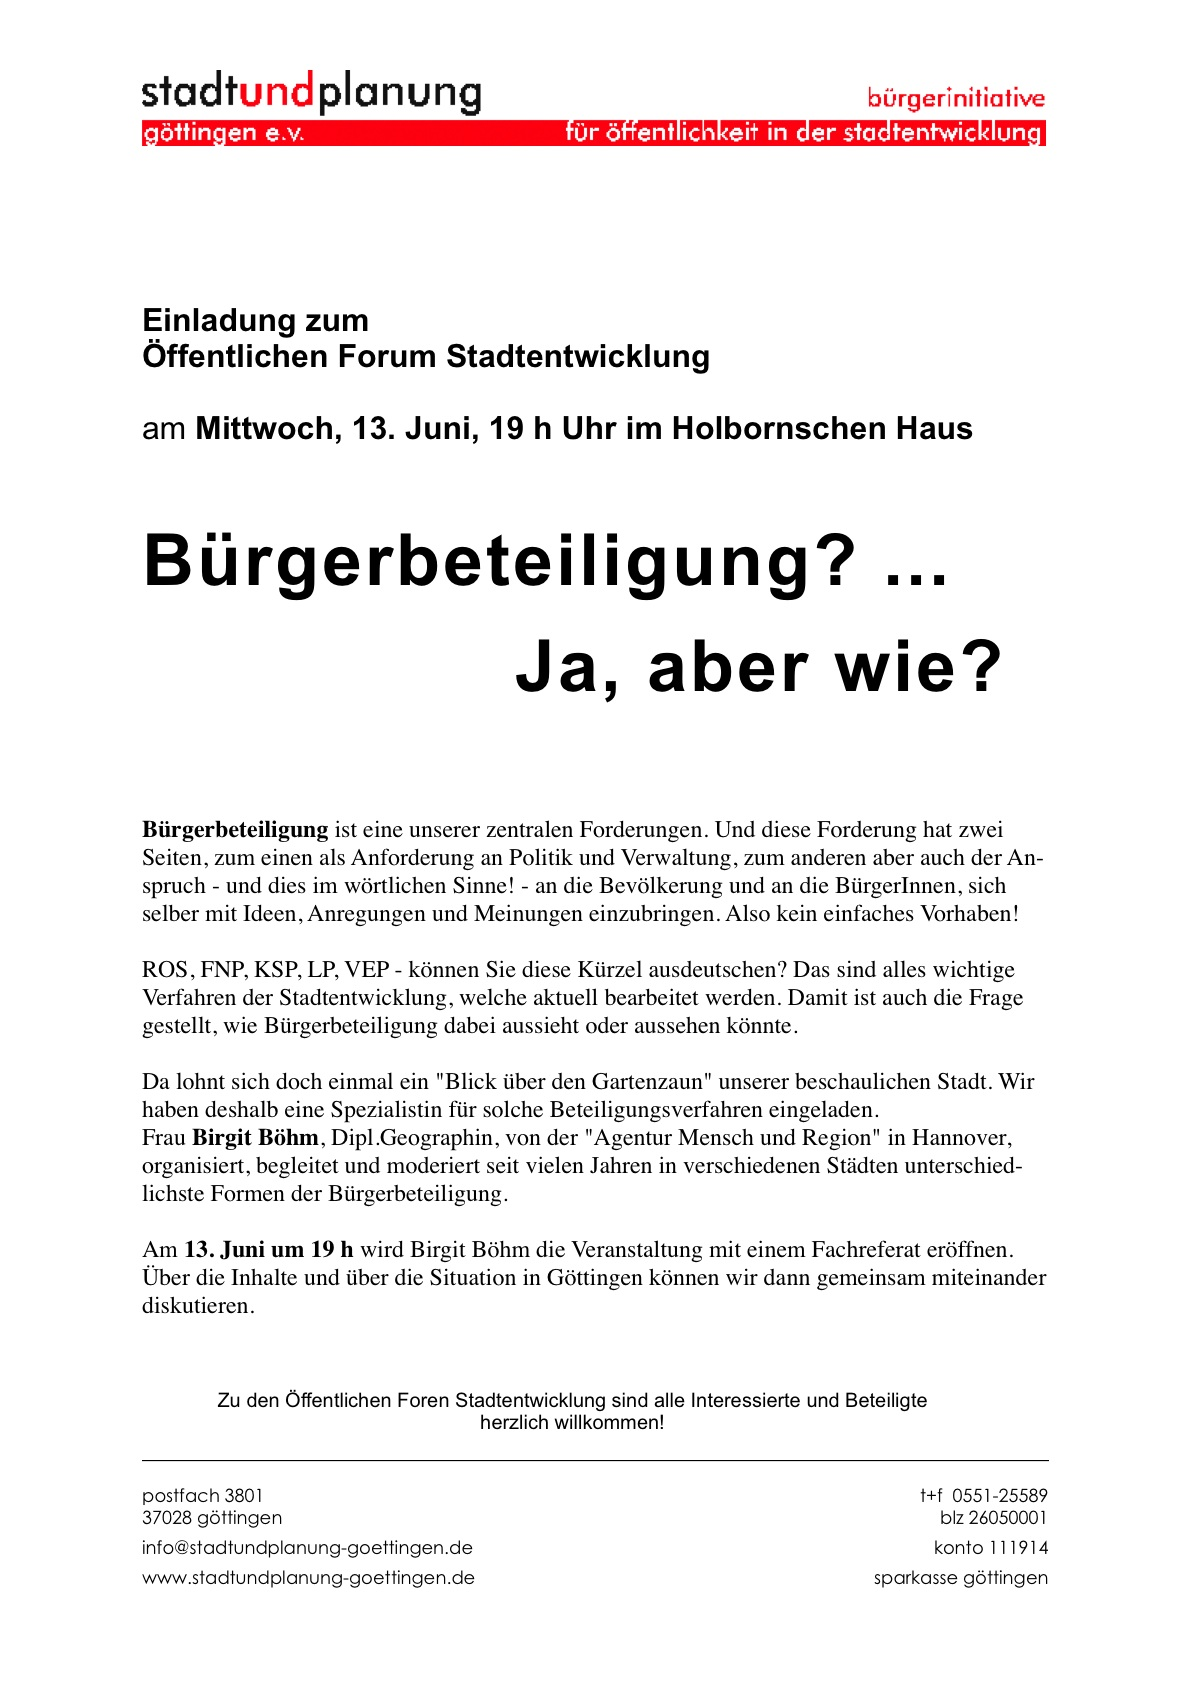 Stadt und Planung Gttingen e.V., Einladung zur Veranstaltung BRGERBETEILIGUNG